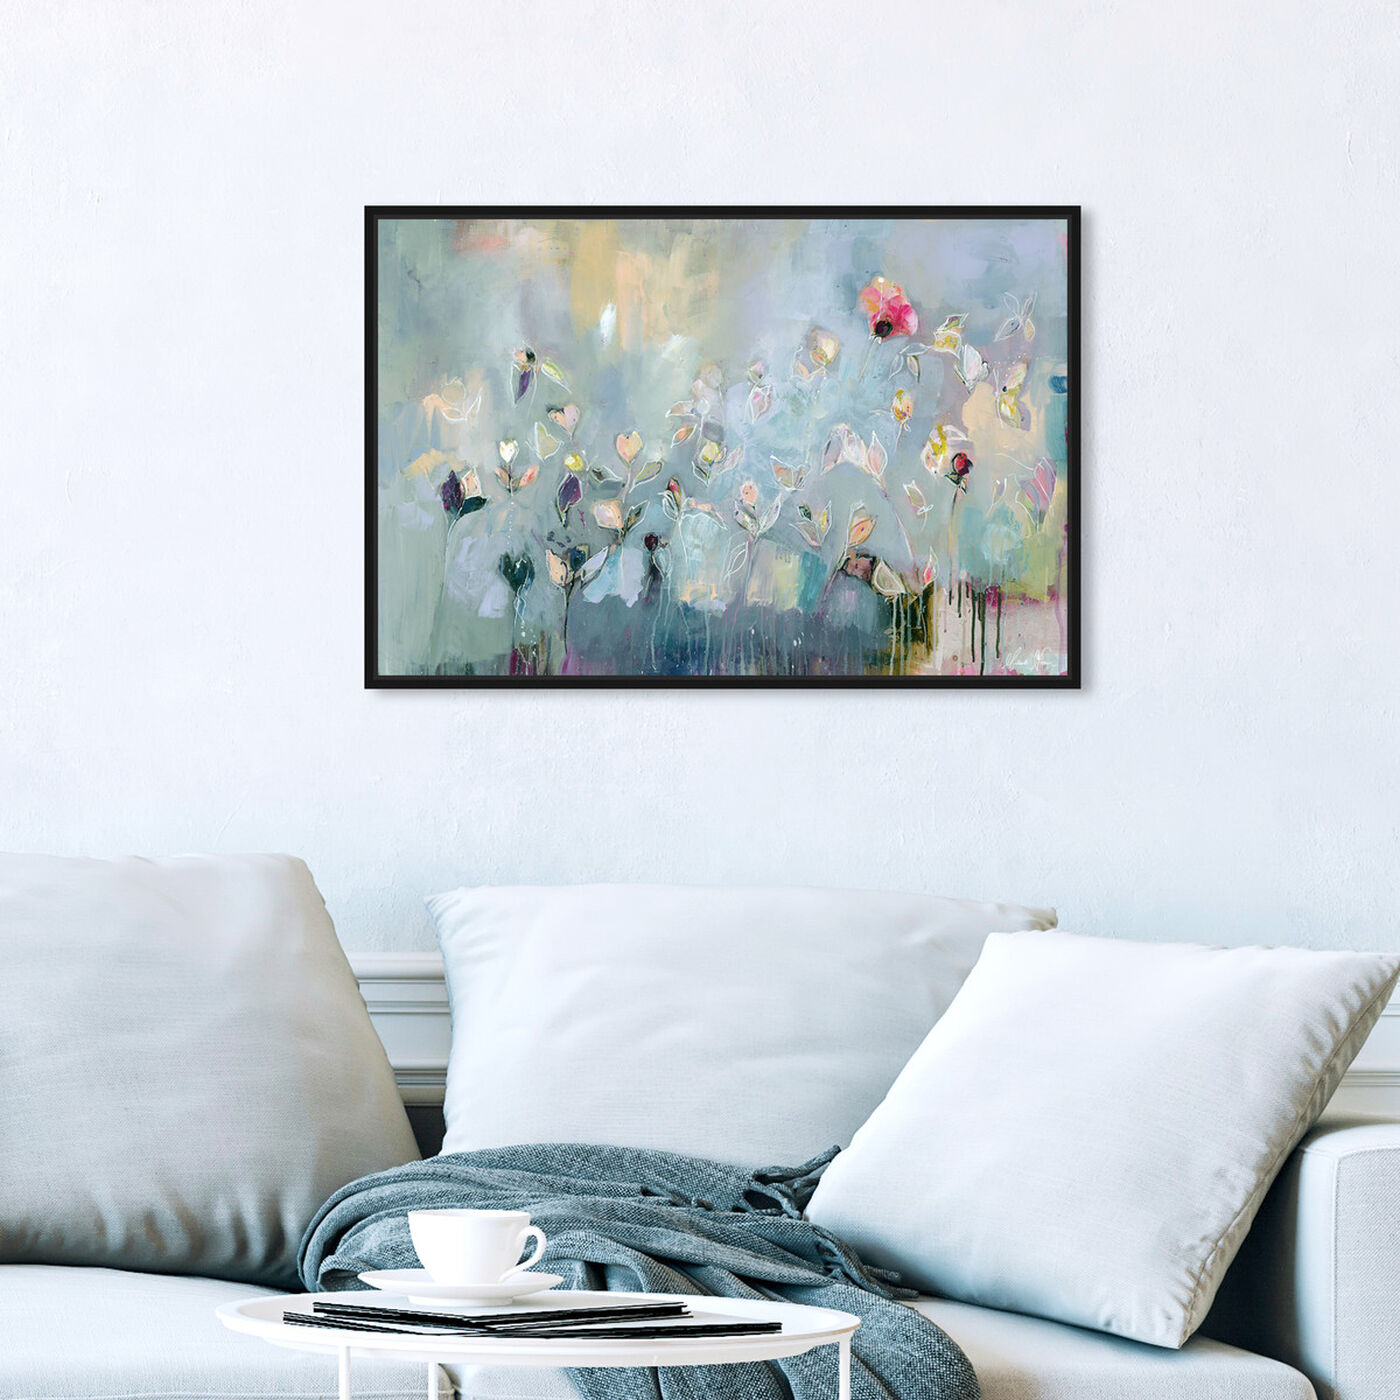 Hanging view of Michaela Nessim - Infinitely Divine featuring abstract and flowers art.